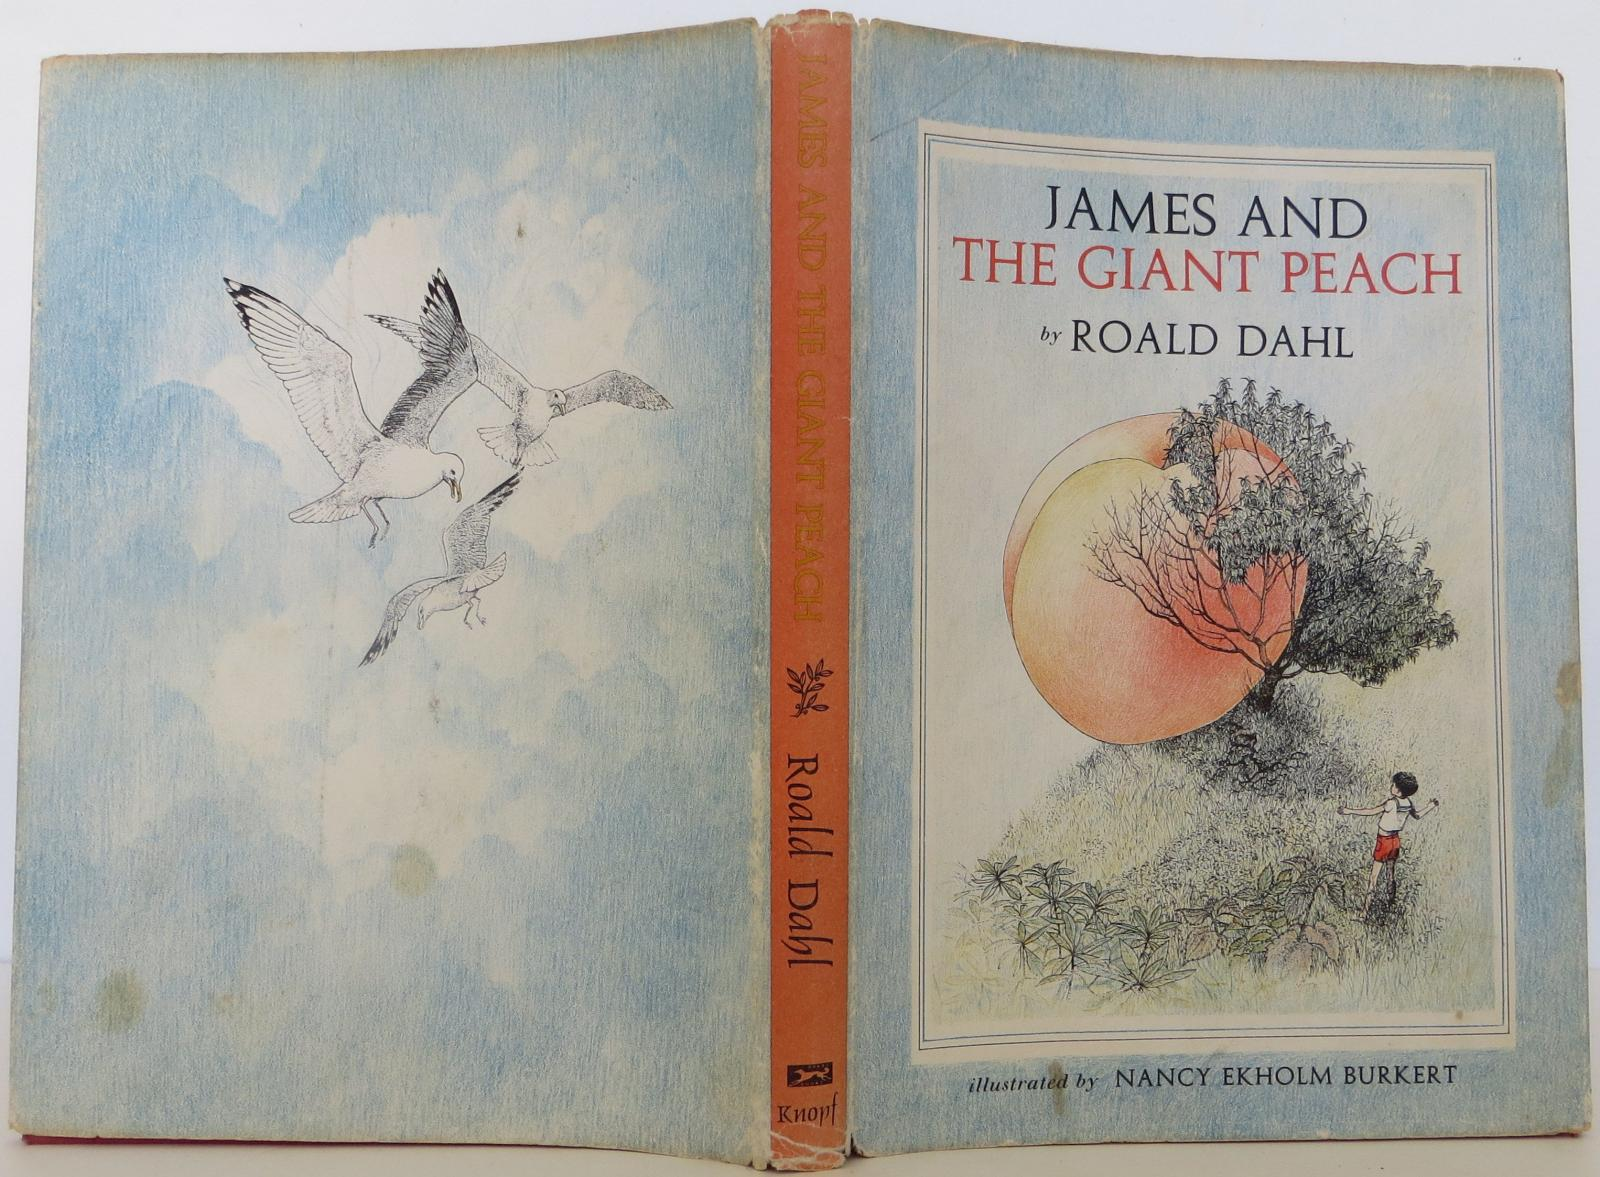 Cover Illustration by Nancy Ekholm Burkert for 'James and the Giant Peach' by Raold Dahl